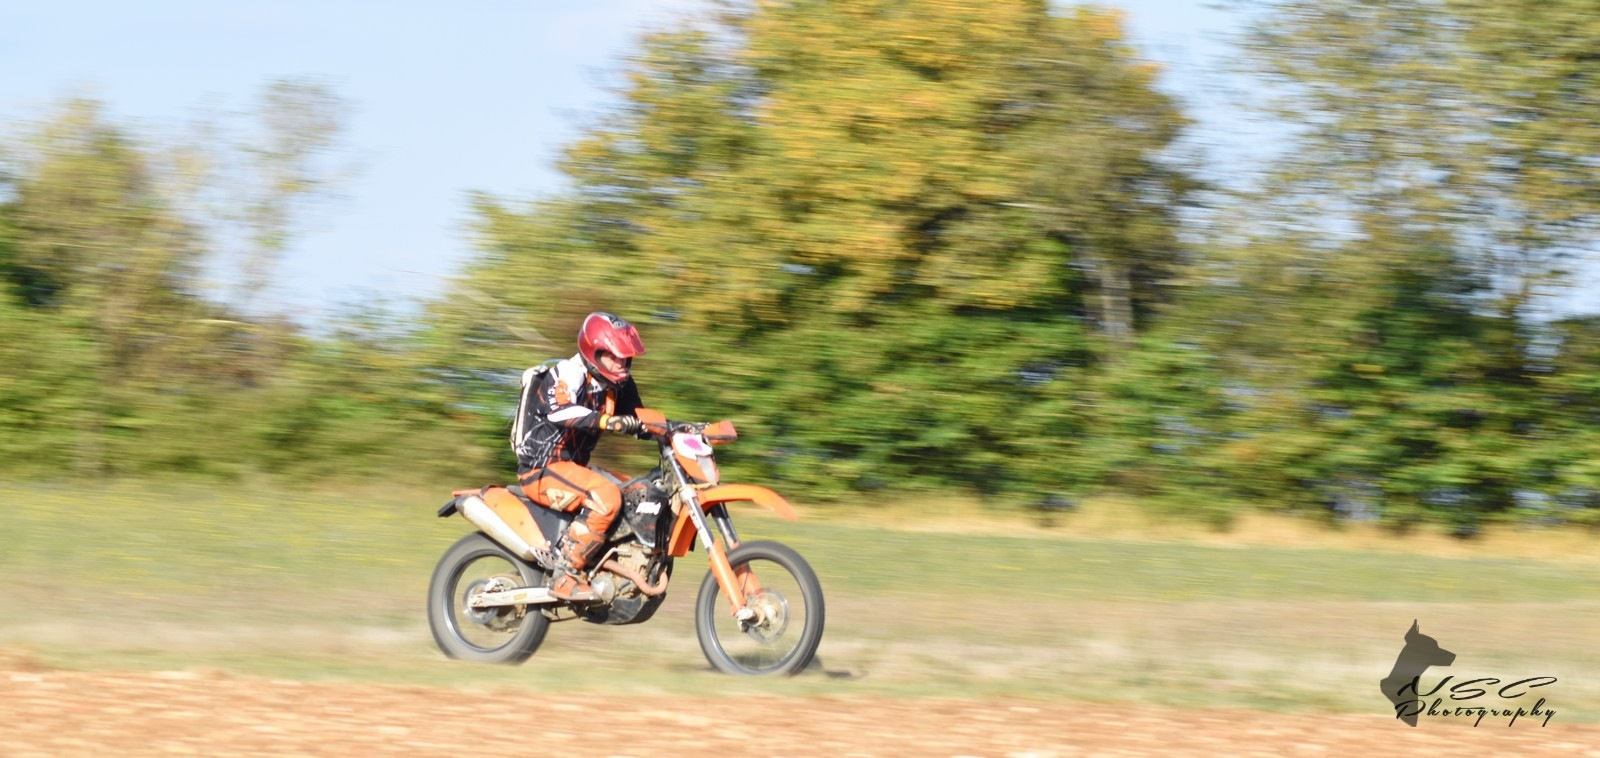 Motor-bike Ride by NSC Photography